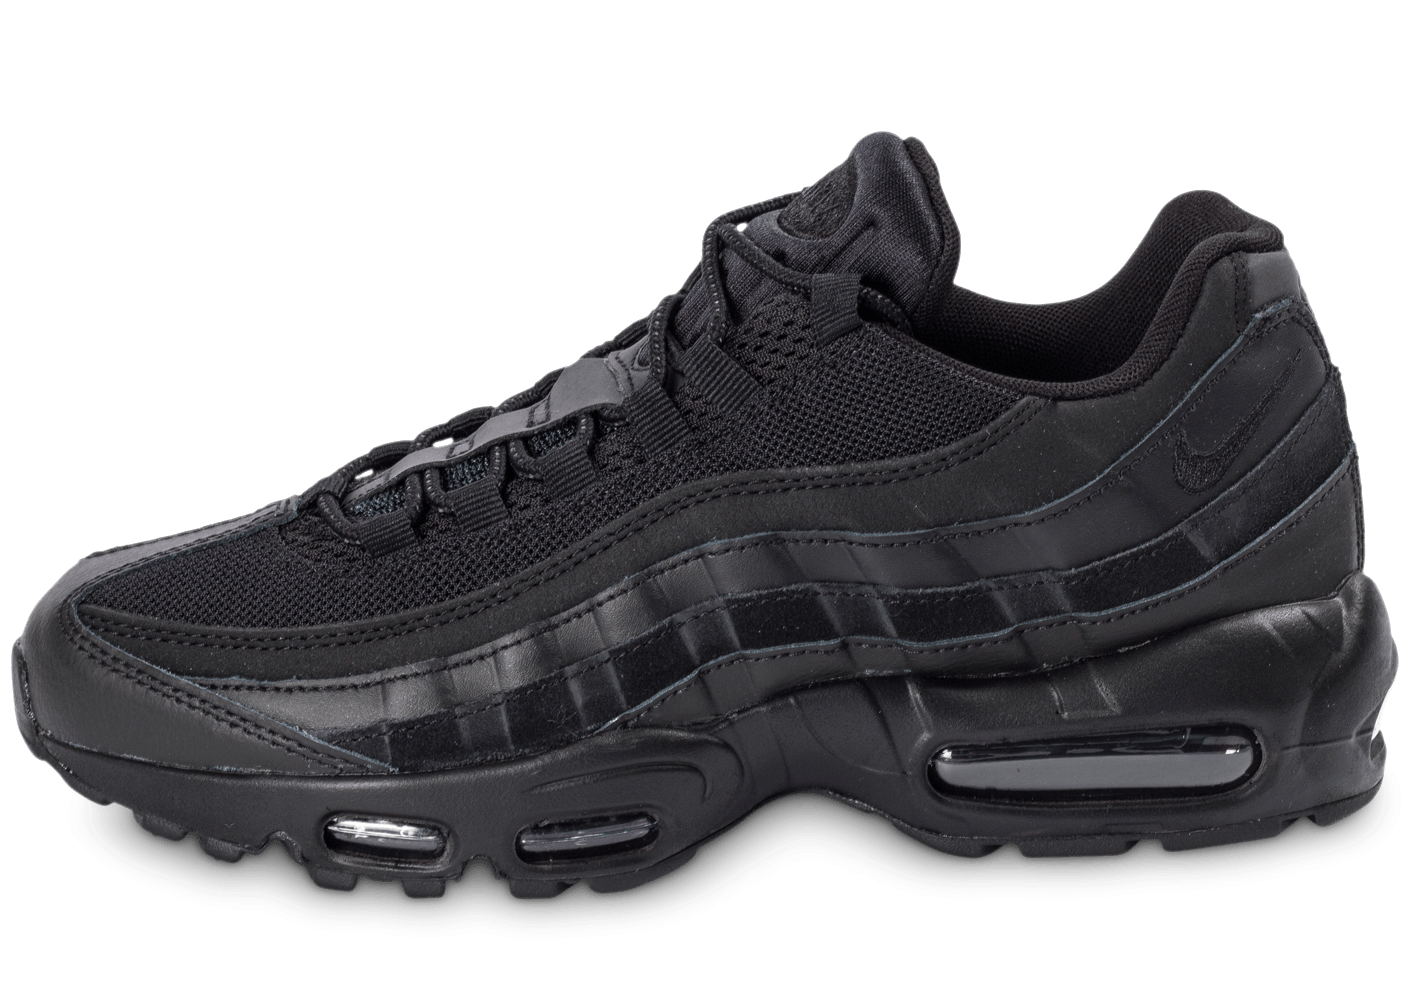 nike air max 95 essential triple noir chaussures homme chausport. Black Bedroom Furniture Sets. Home Design Ideas